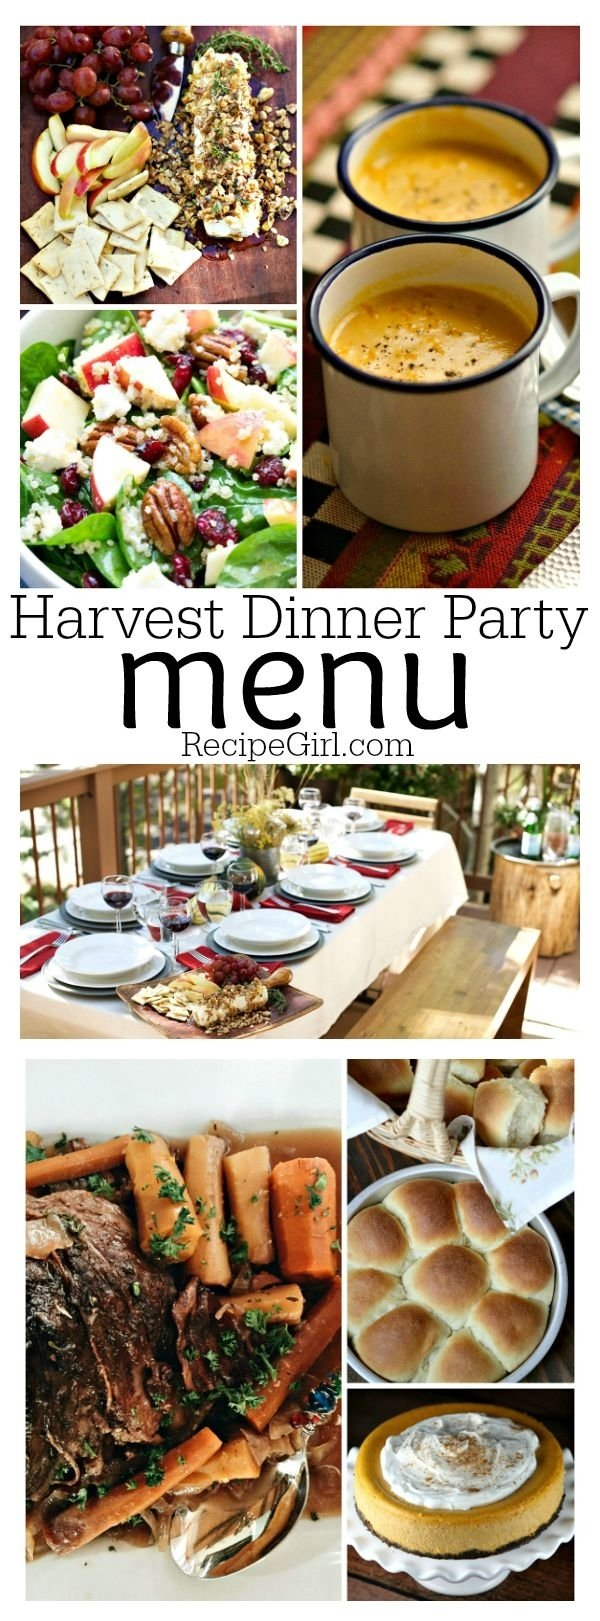 10 Awesome Winter Dinner Party Menu Ideas